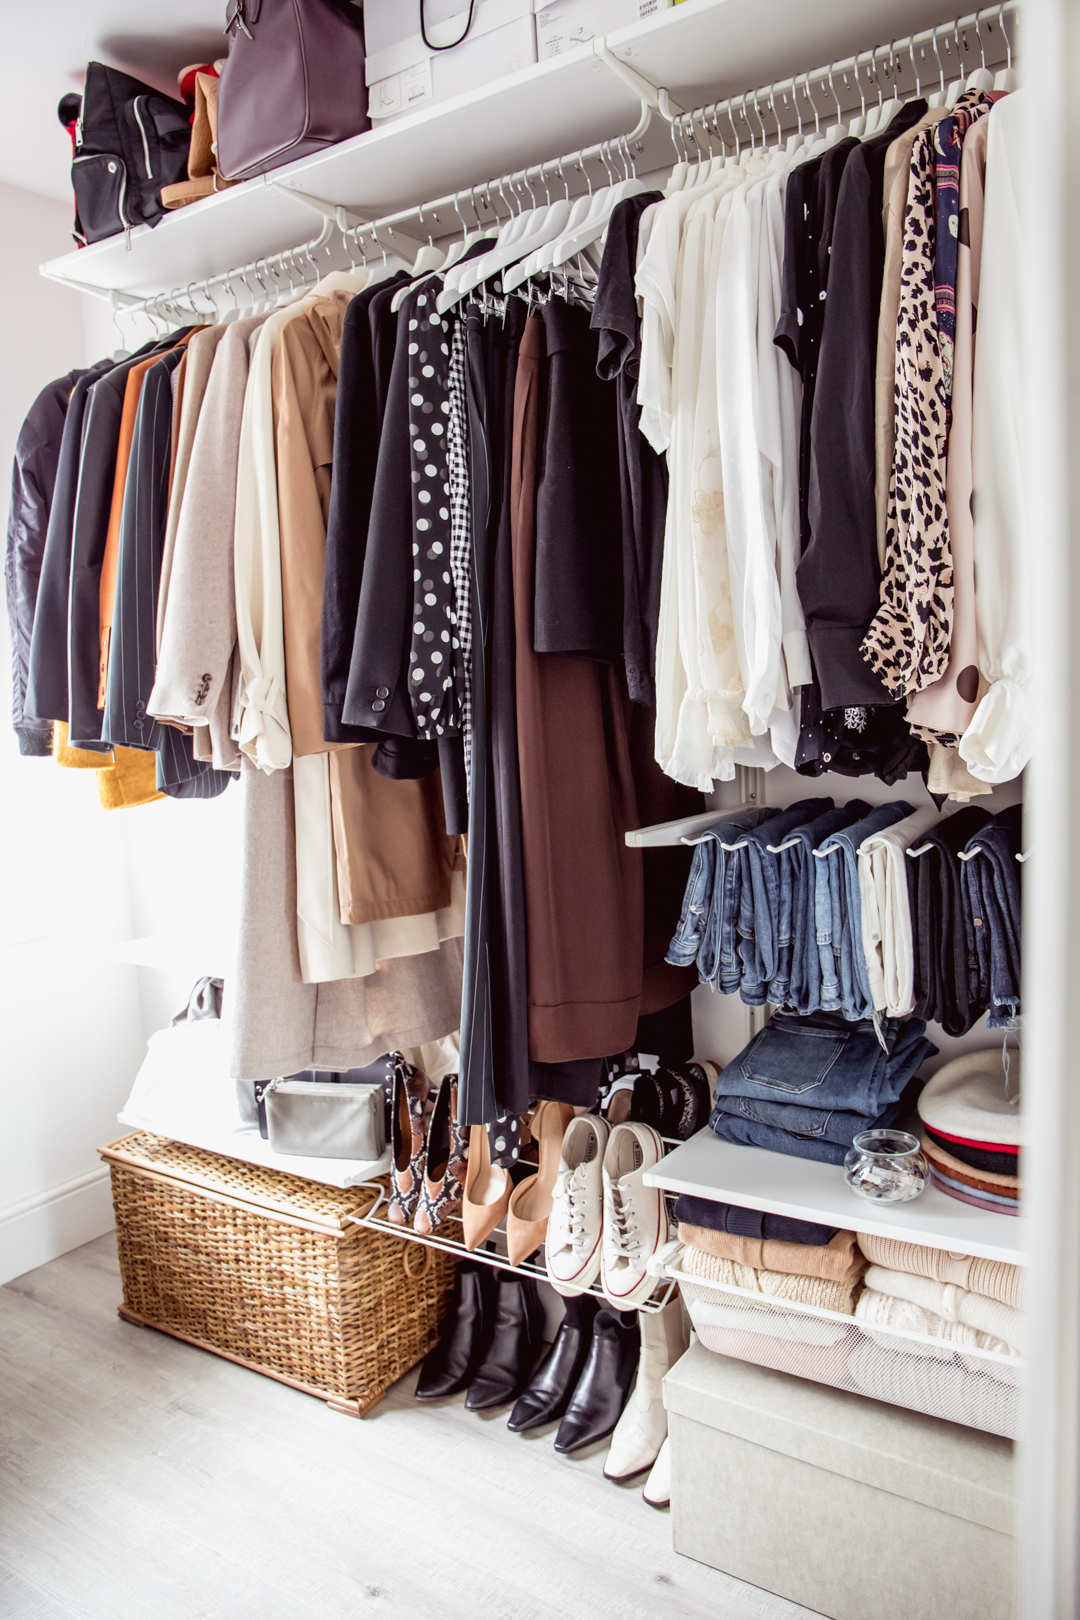 How to Effectively Declutter & Organise Your Wardrobe